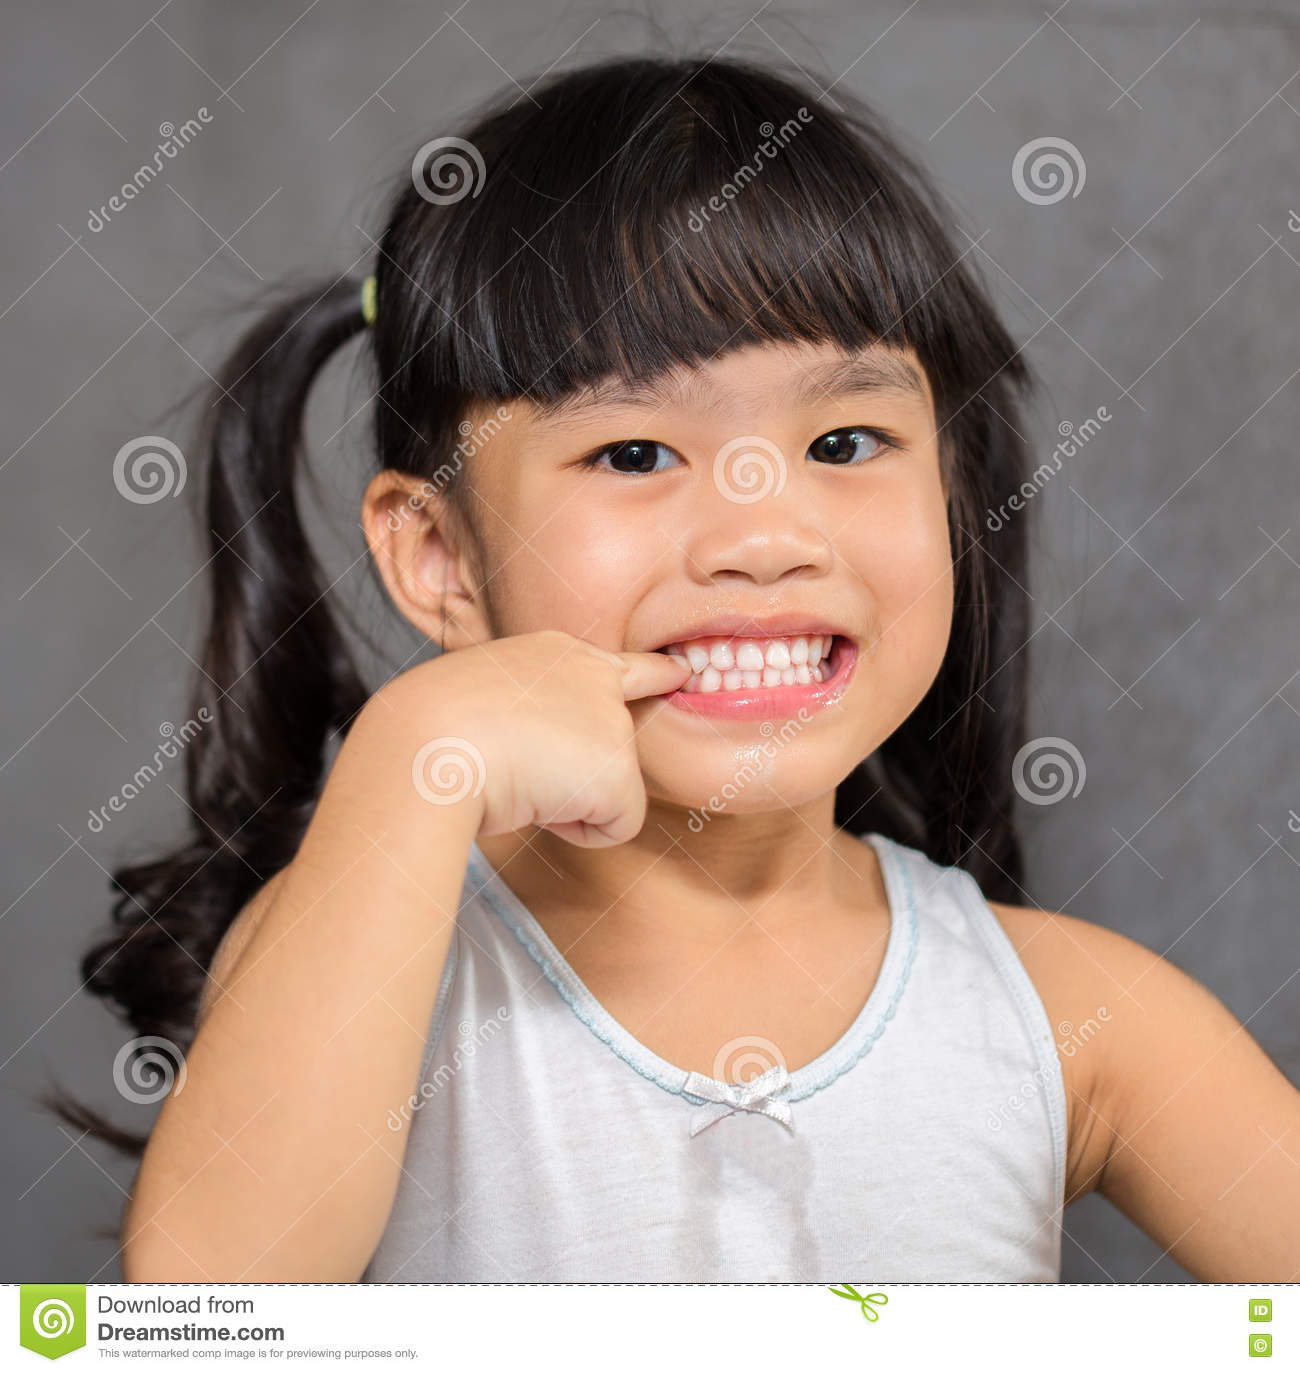 Little girl pointing teeth on white After brushing teeth feeling happy